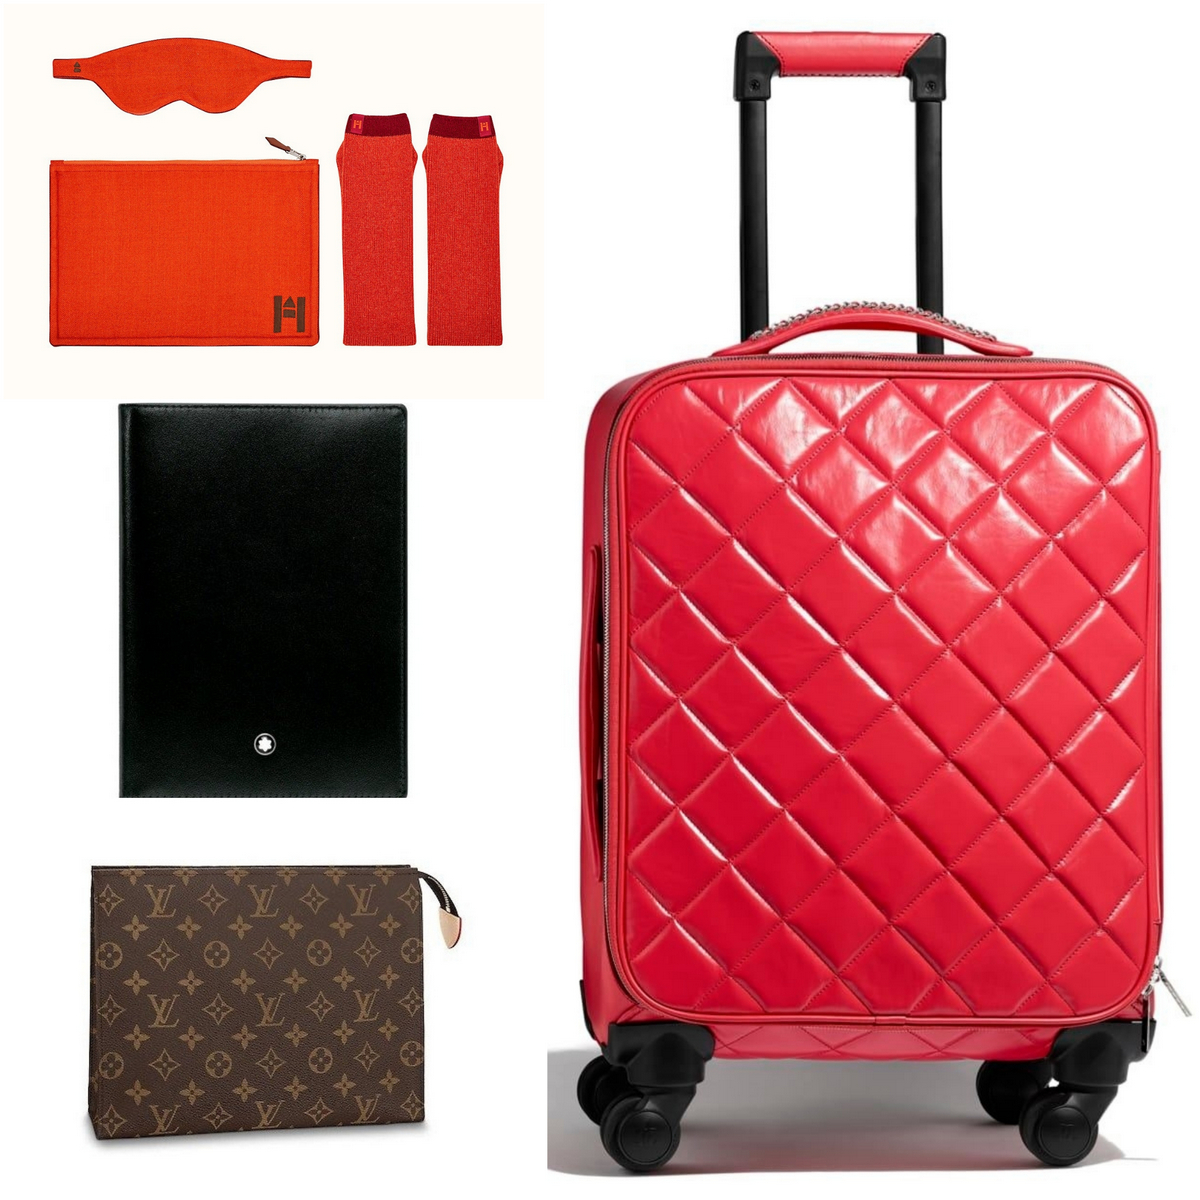 Hey girl boss! Here are some luxe travel accessories for first-class and beyond : Luxurylaunches